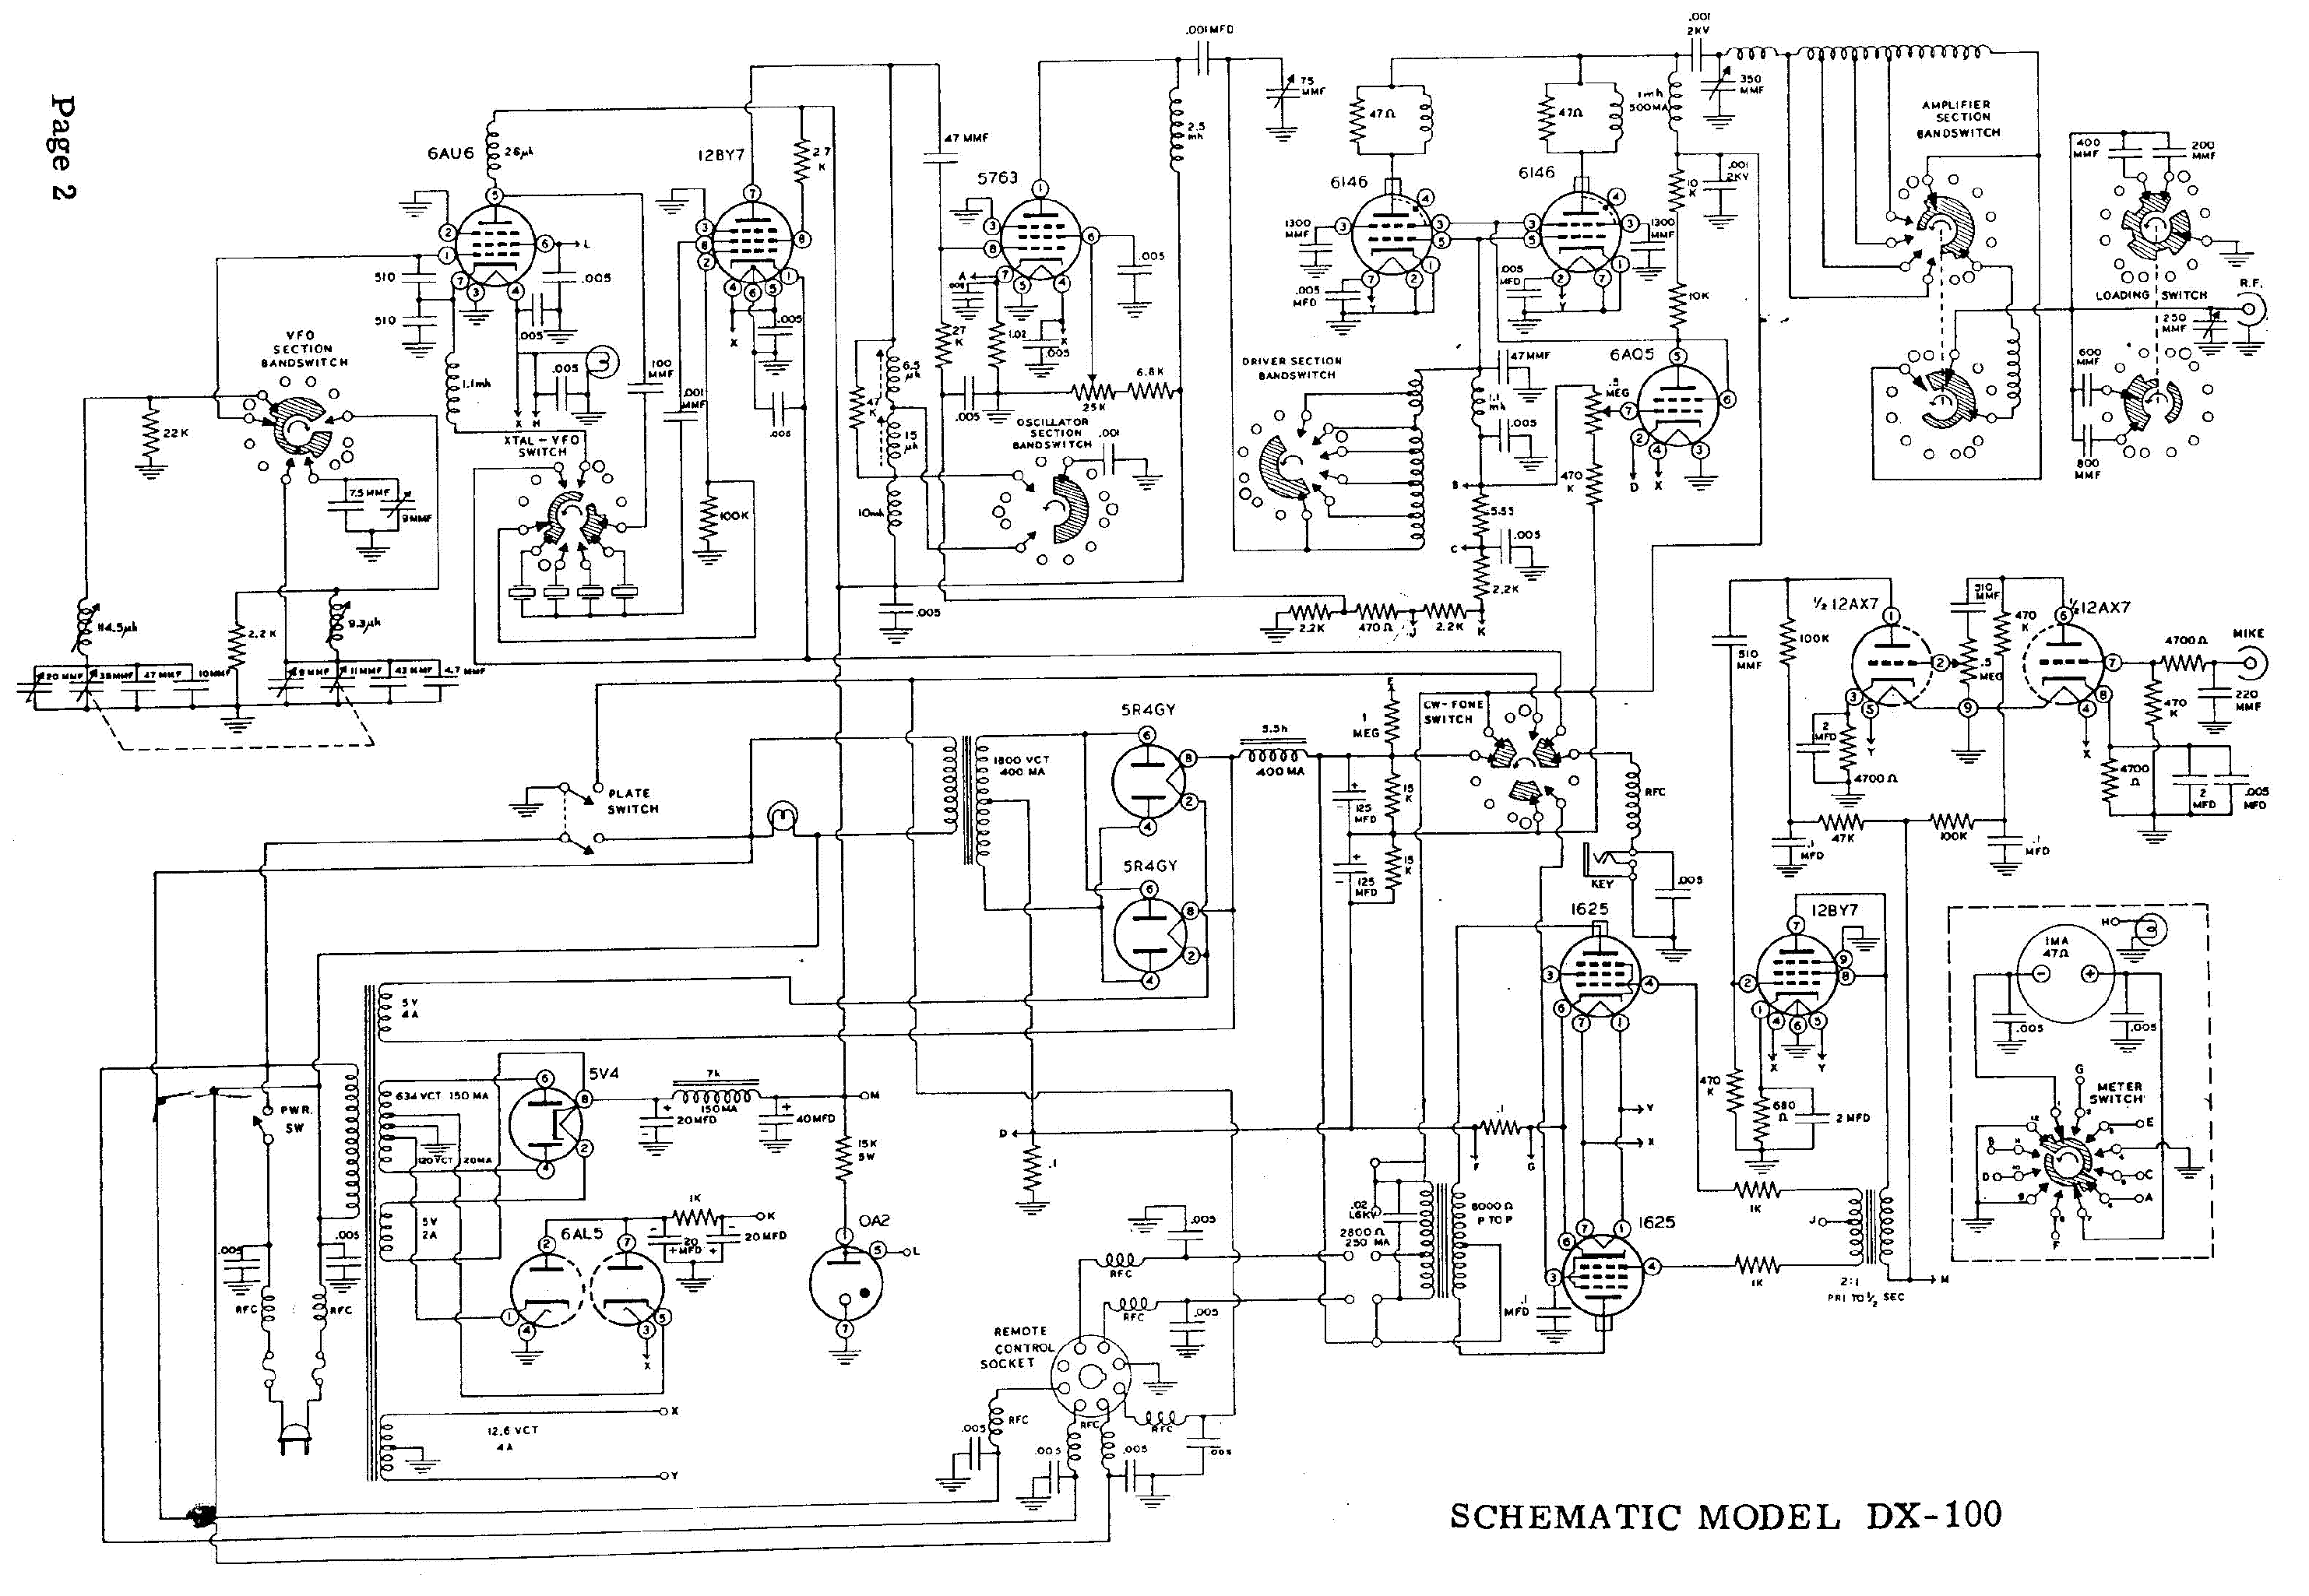 heathkit sa-2060a manual pdf